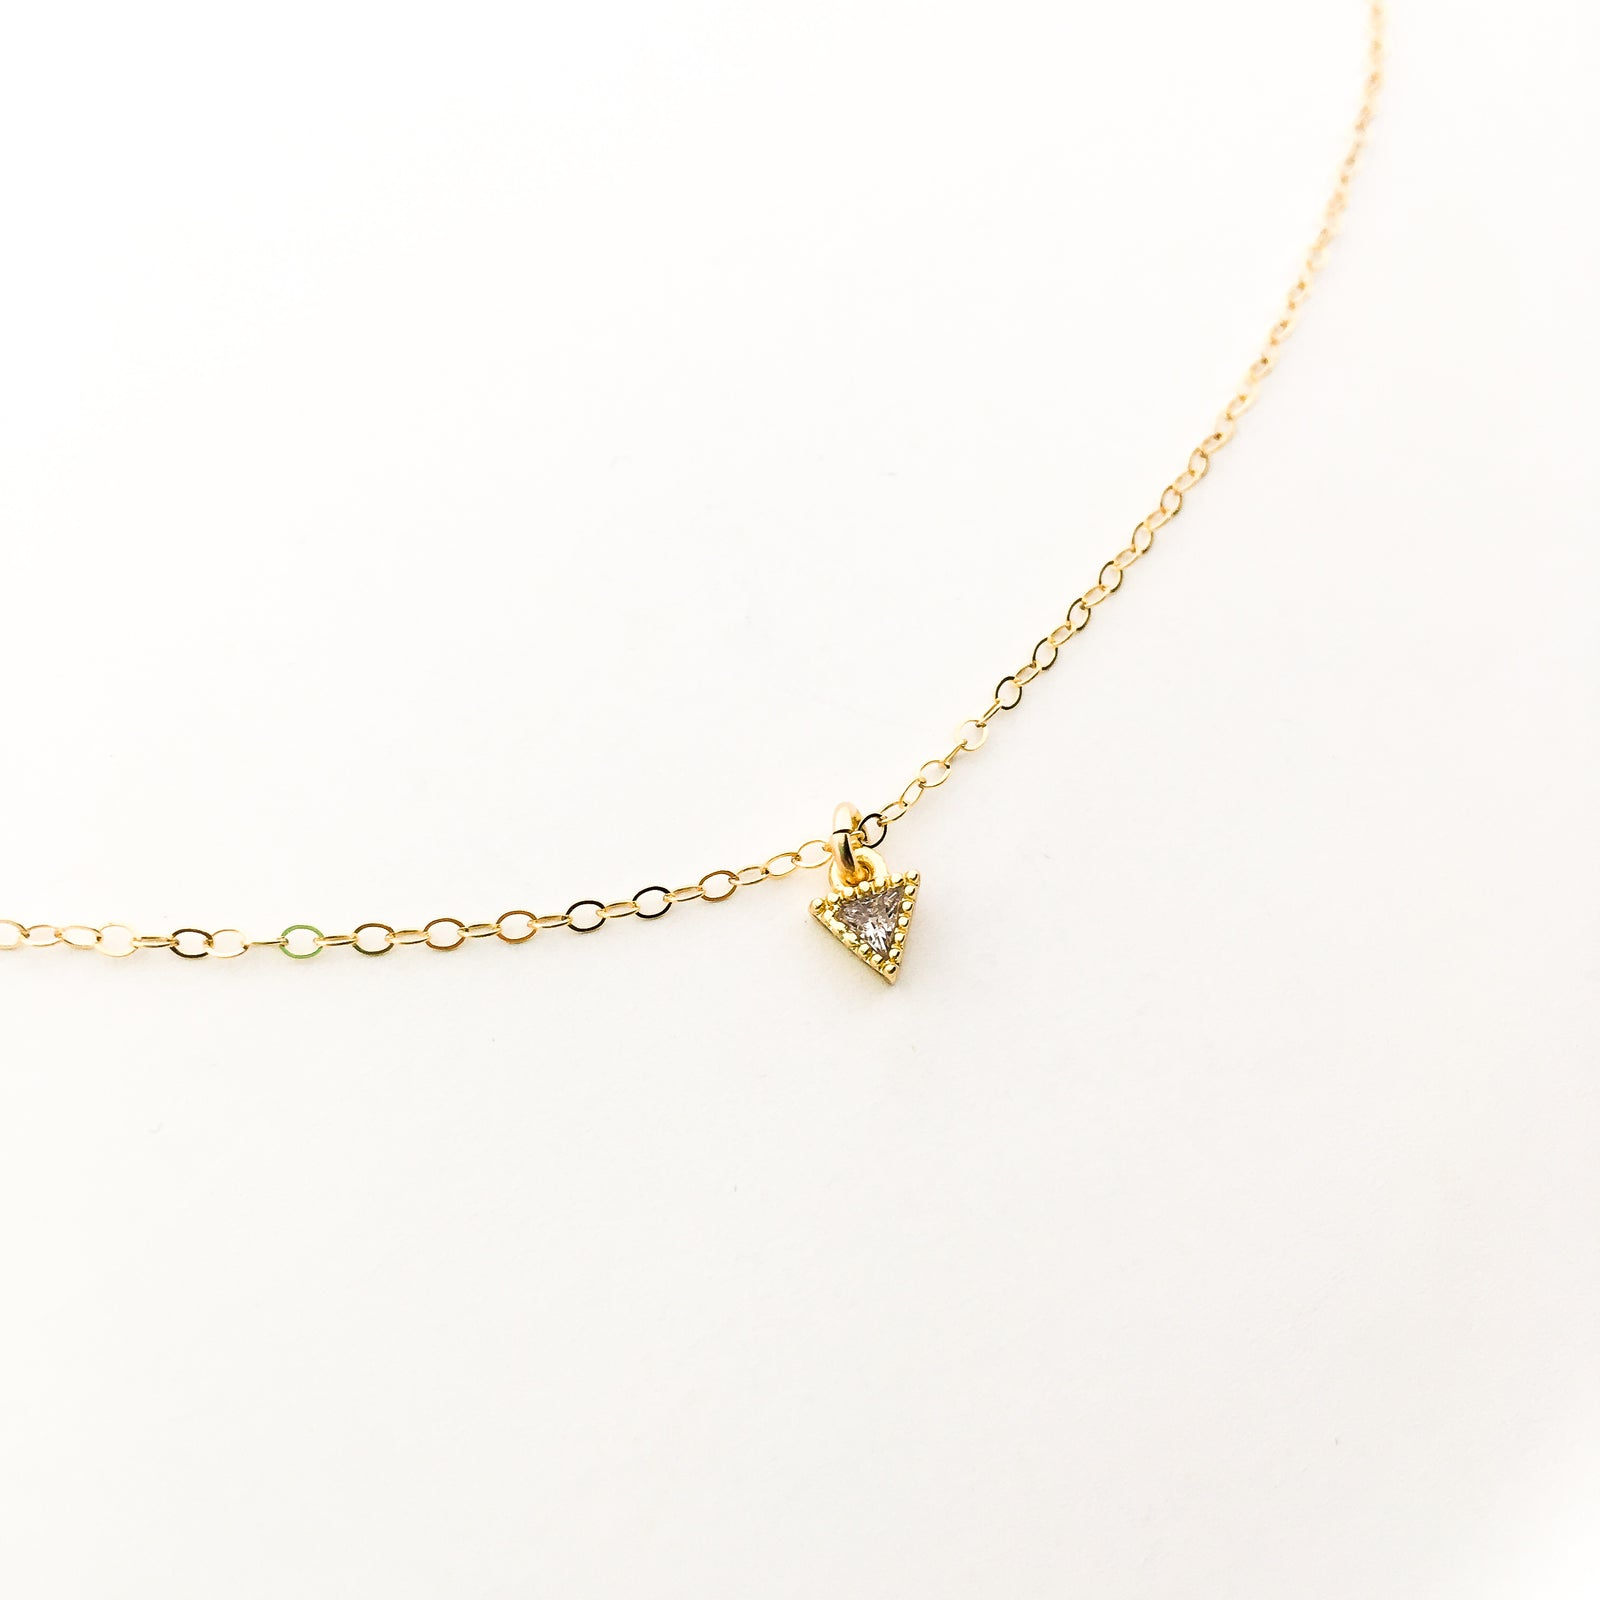 MINI RHINESTONE ARROWTIP NECKLACE | 14K GOLD-FILLED